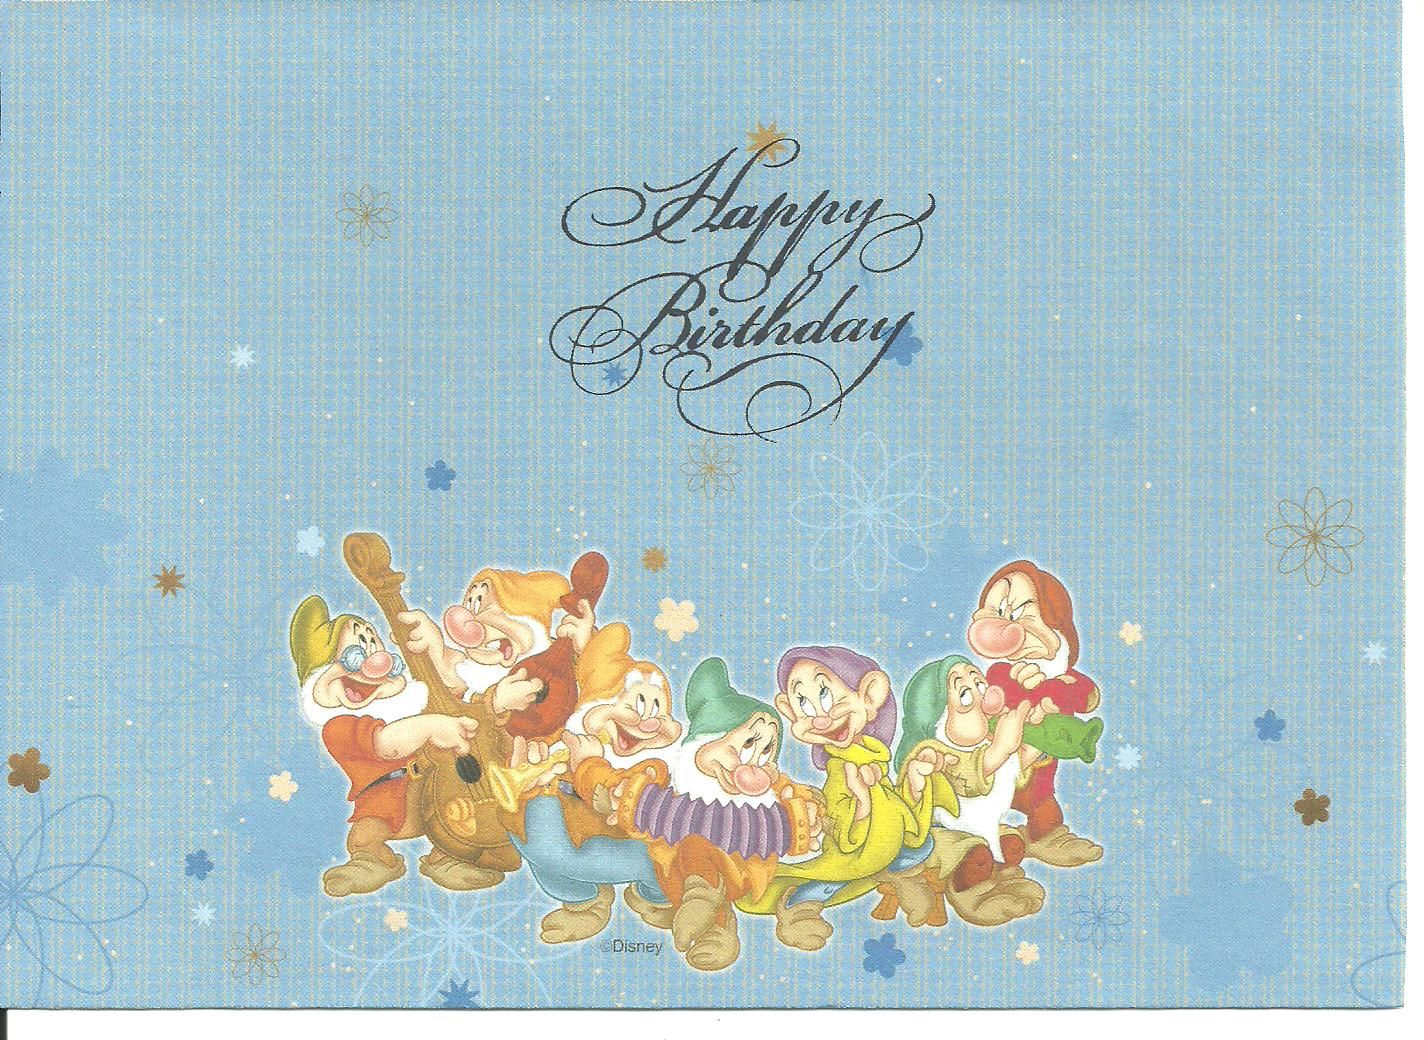 Disney happy birthday card disney pics pinterest happy happy birthday cards with disney kristyandbryce Choice Image